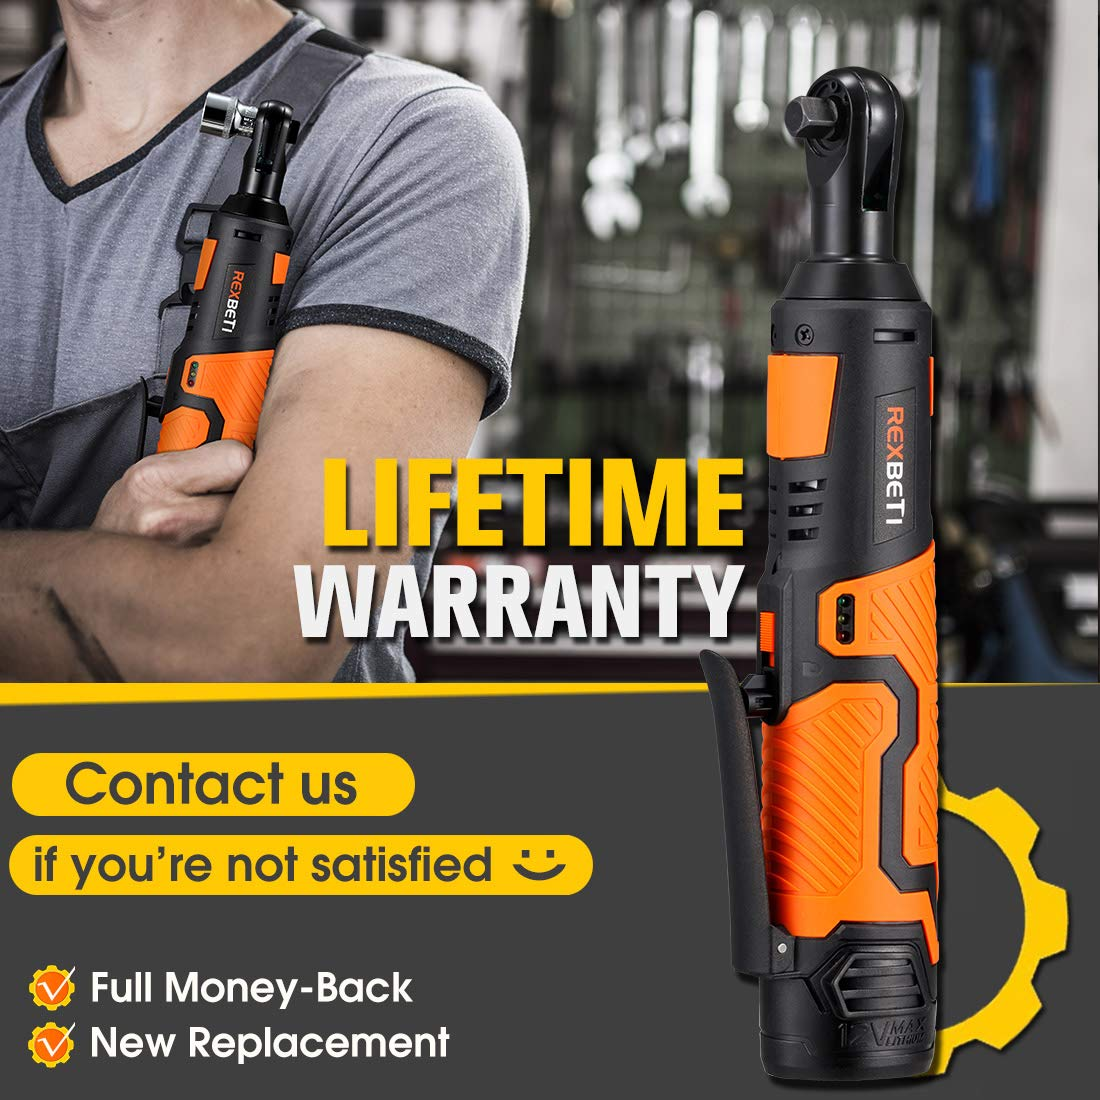 REXBETI Cordless 3/8'' Electric Ratchet Wrench Set with 12V Lithium-Ion Battery and Charger Kit, Include 7-piece 3/8'' Metric Sockets and 1-piece 1/4'' Socket Adapter, 45Nm of Maximum Torque by REXBETI (Image #2)